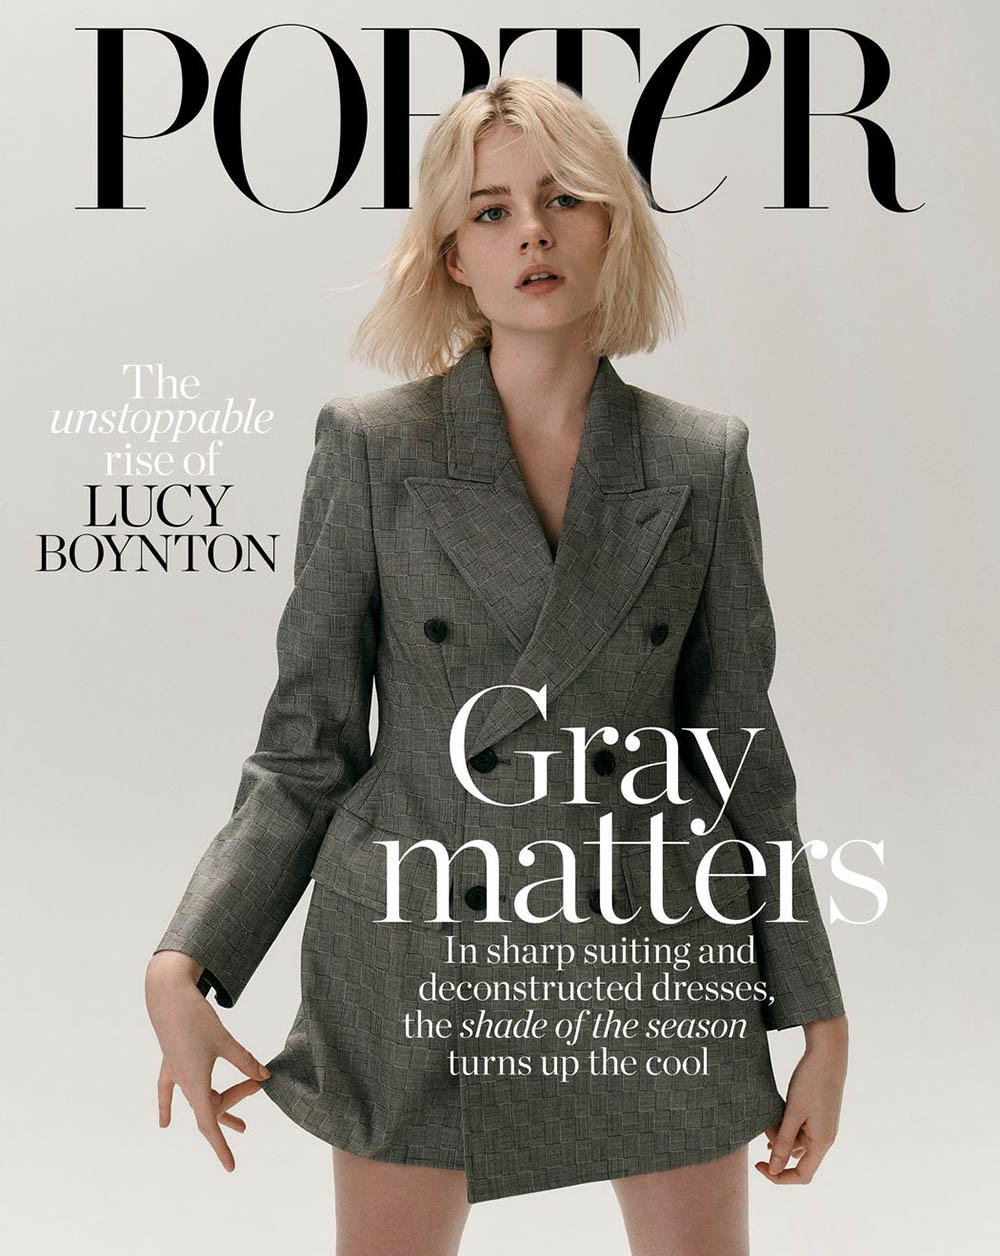 Lucy Boynton covers Porter Edit September 20th, 2019 by Nicolas Kantor